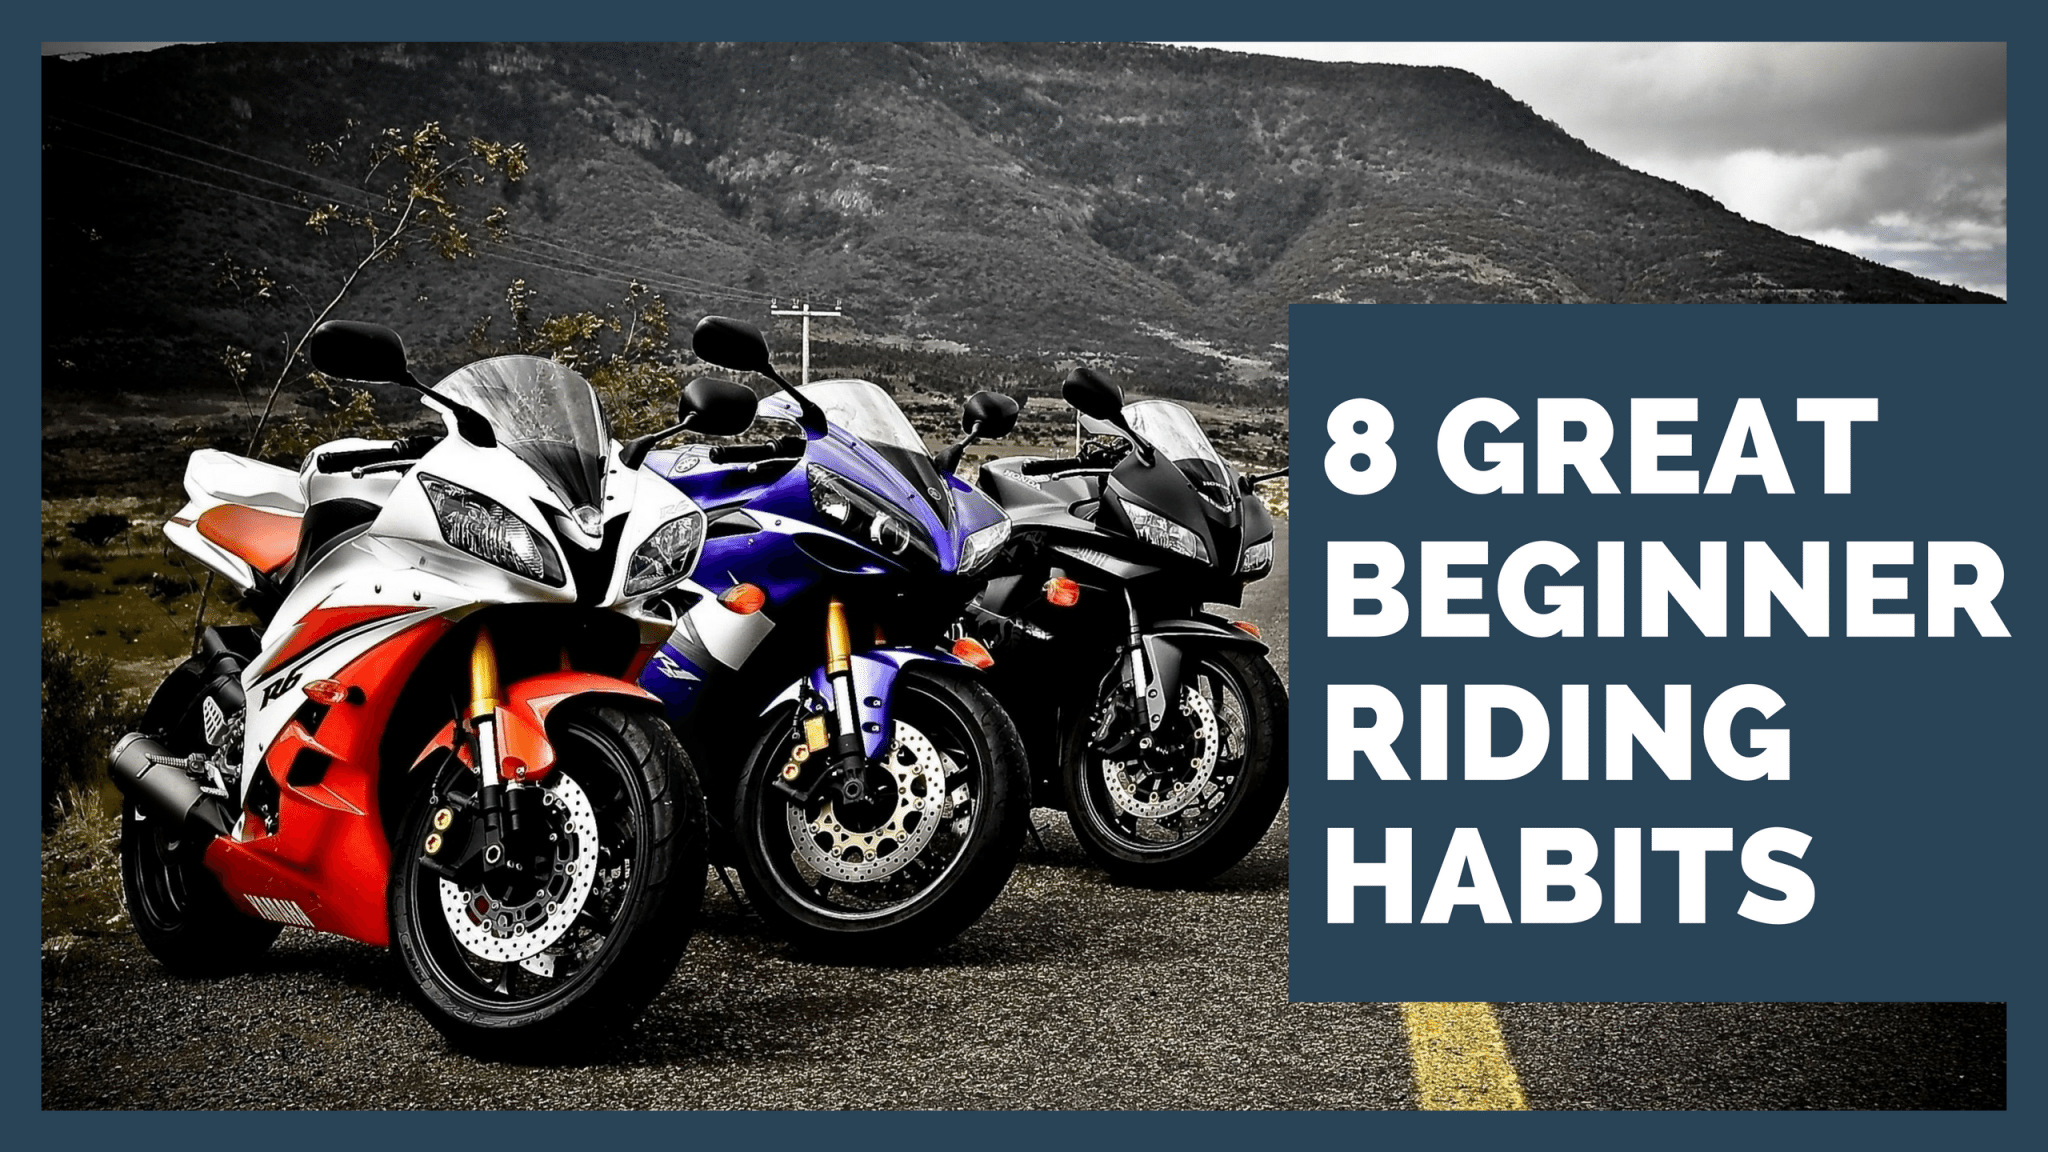 8 Great Beginner Riding Habits